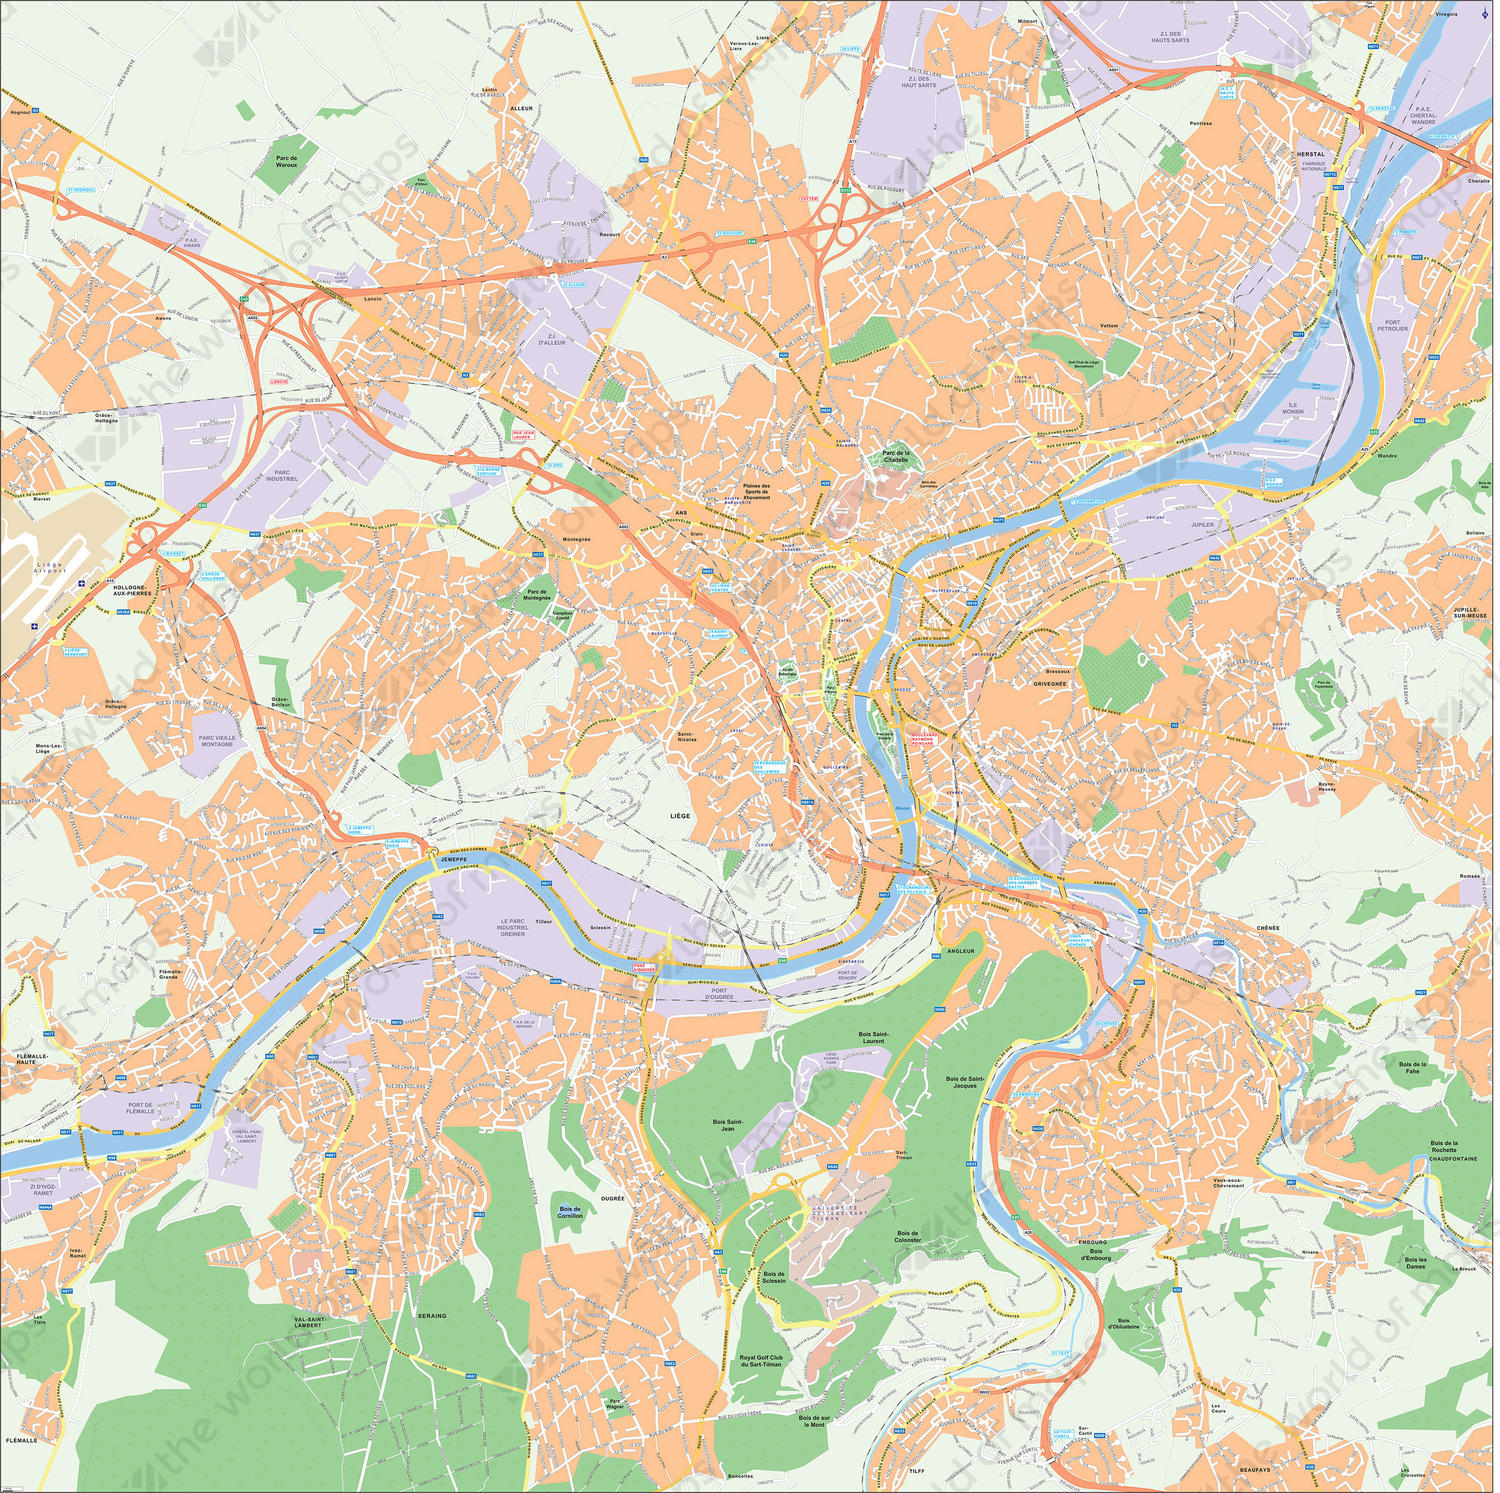 Digital map Luik